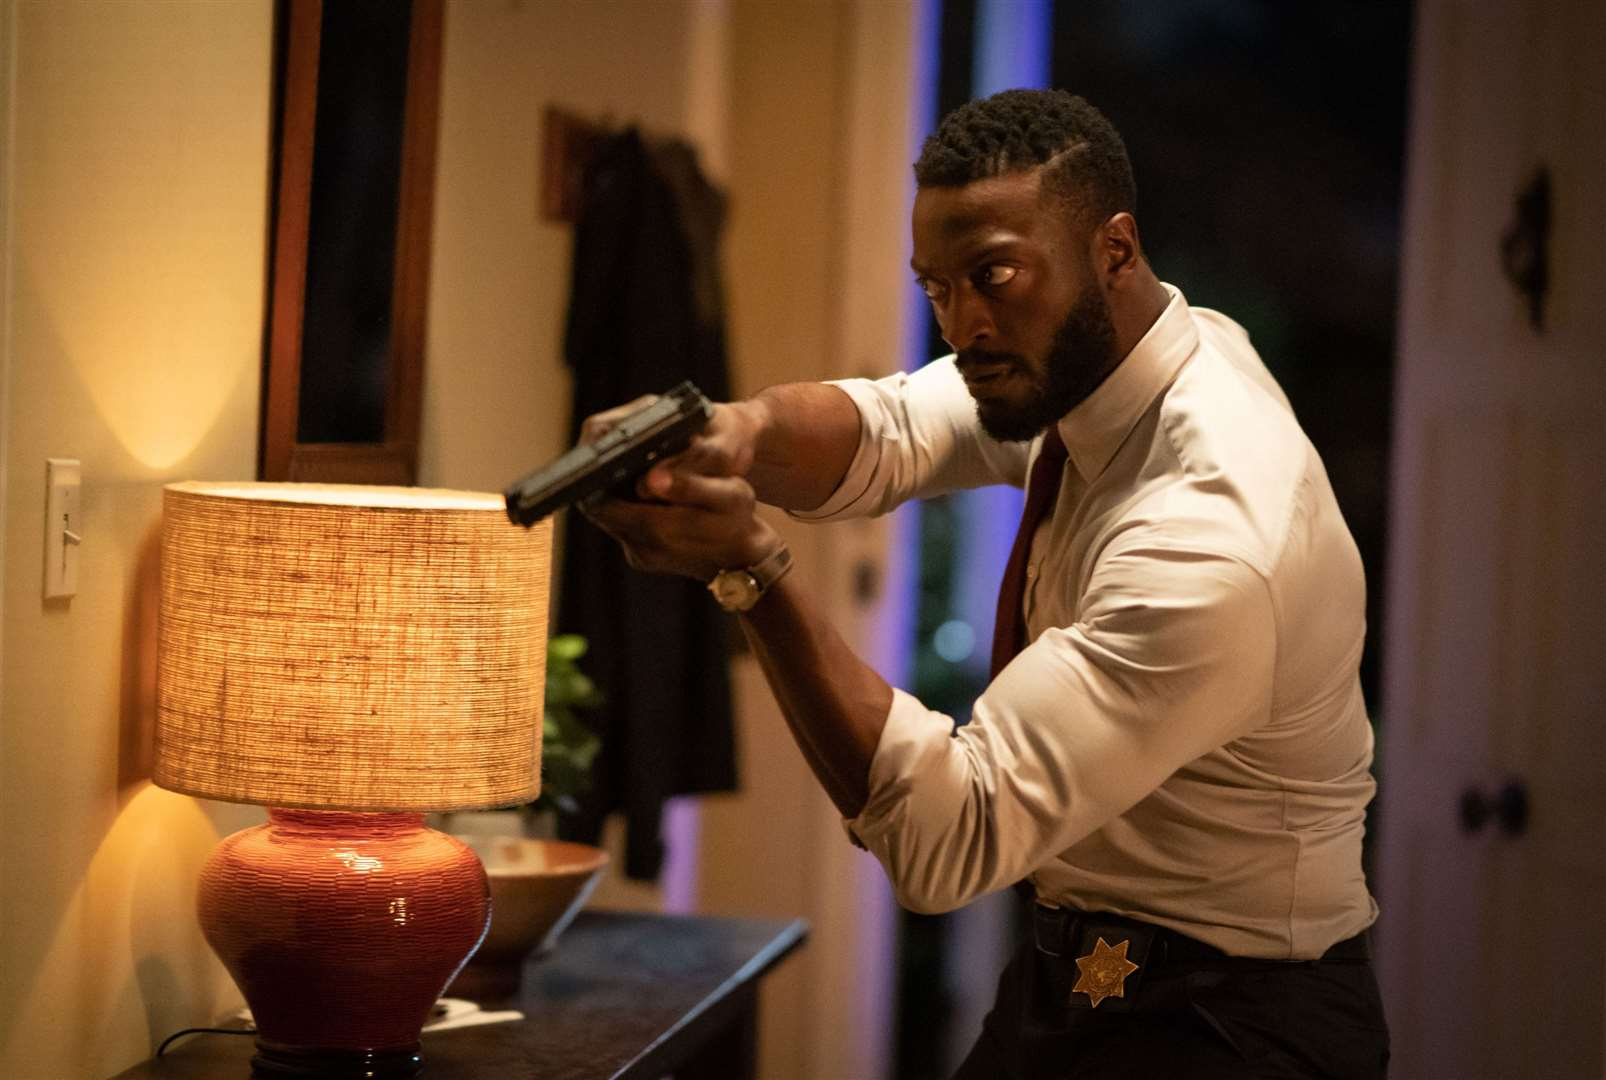 Aldis Hodge as James Lanier in The Invisible Man